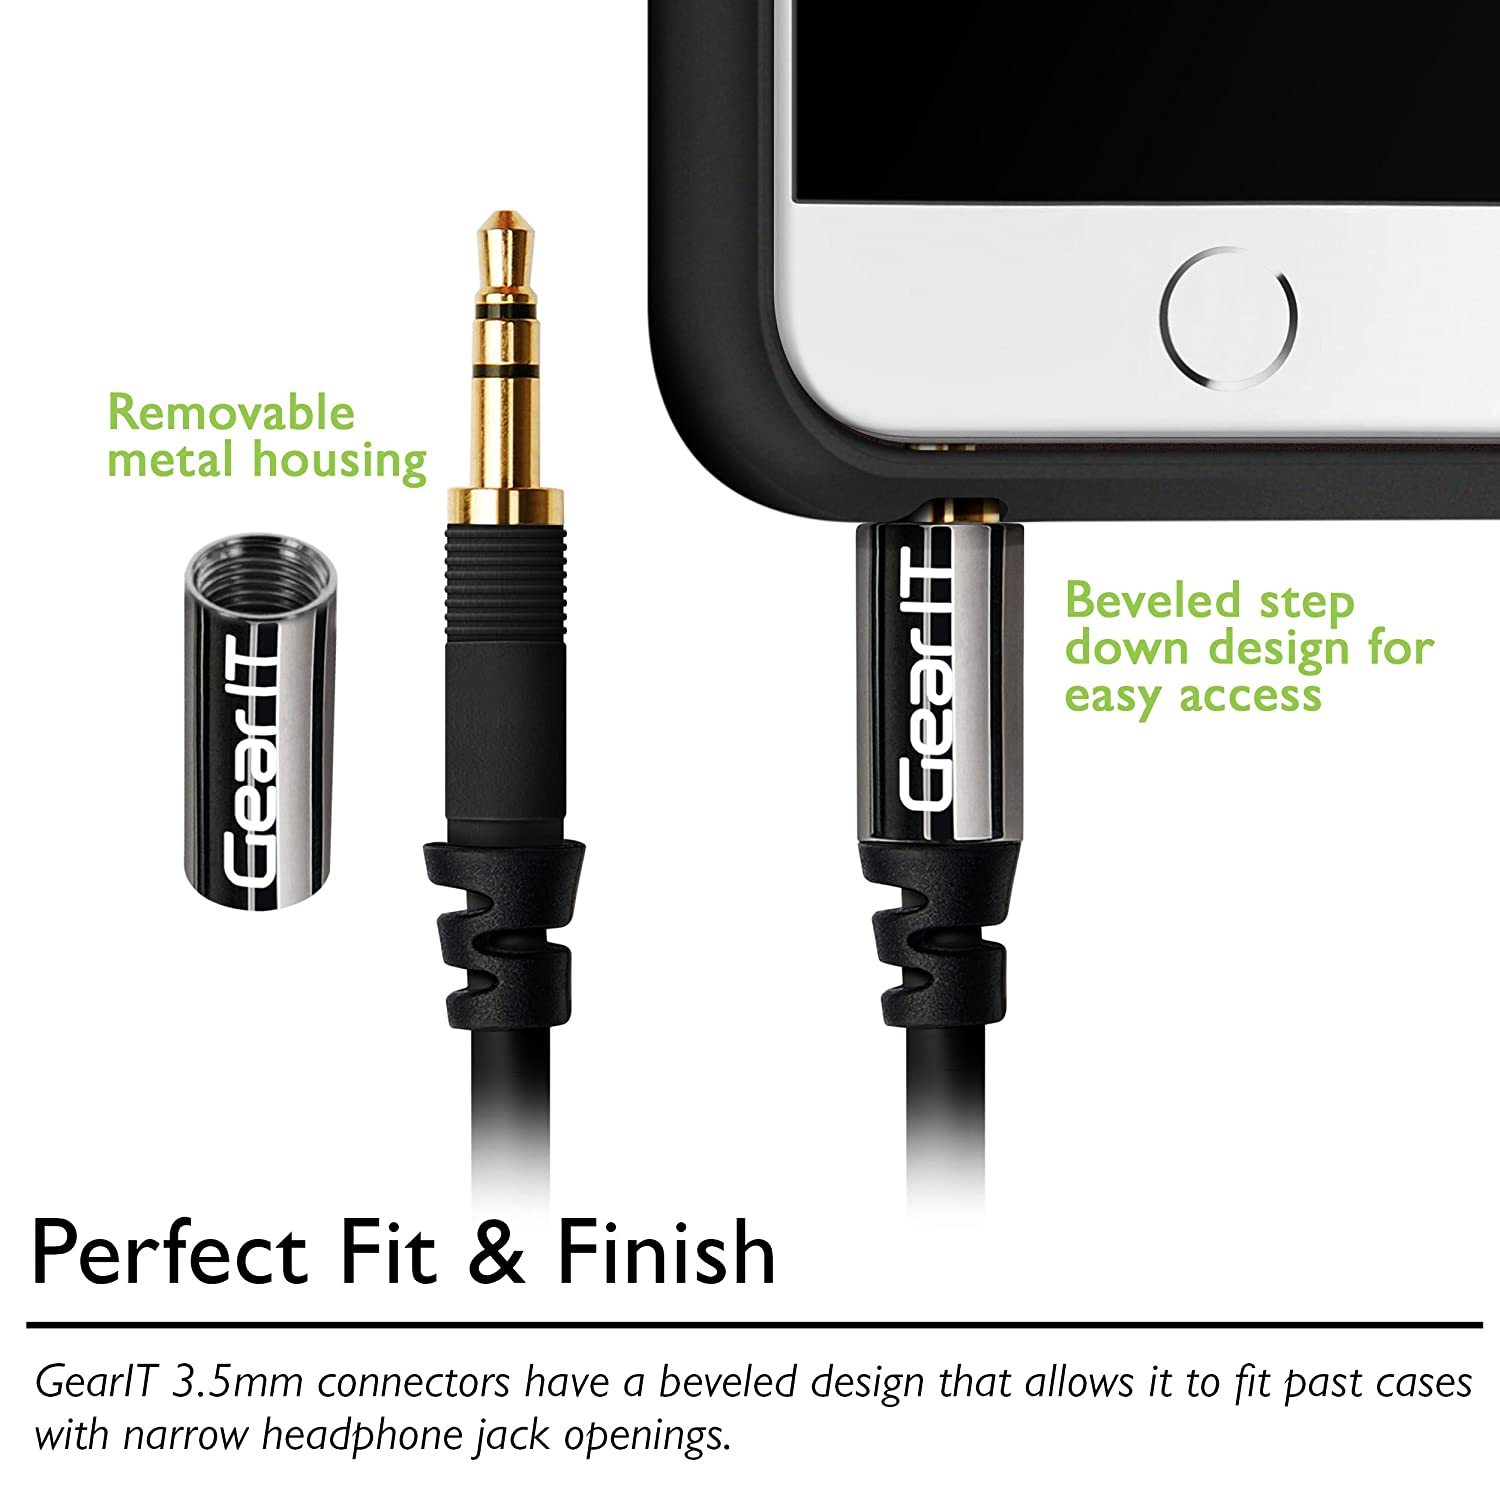 3.5mm to RCA Cable iPods iPhones Car Stereo MP3 Players and More Home System GearIT Pro Series 50 Feet Premium Gold Plated 3.5mm to RCA Audio Stereo Cable for Headphones Black